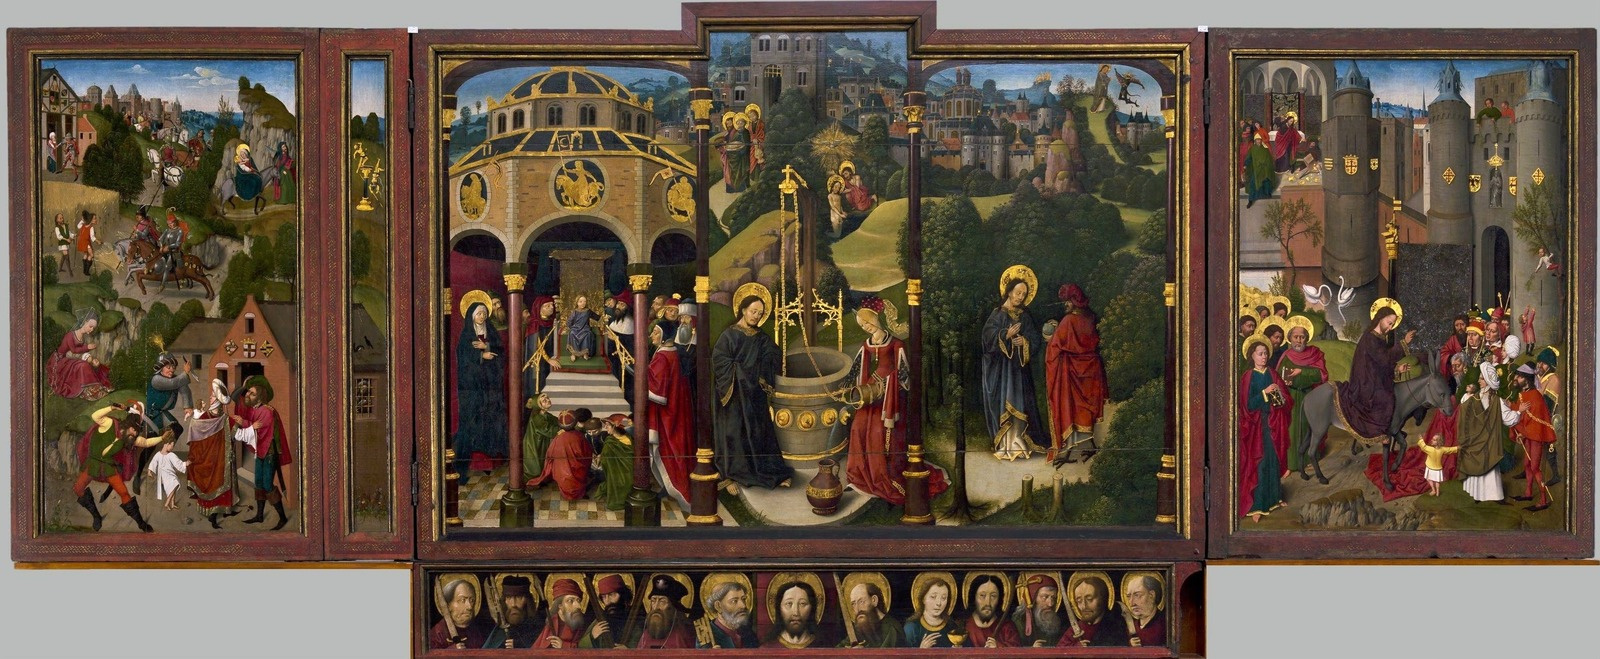 Unknown artist. Jerusalem triptych. 1497-1500